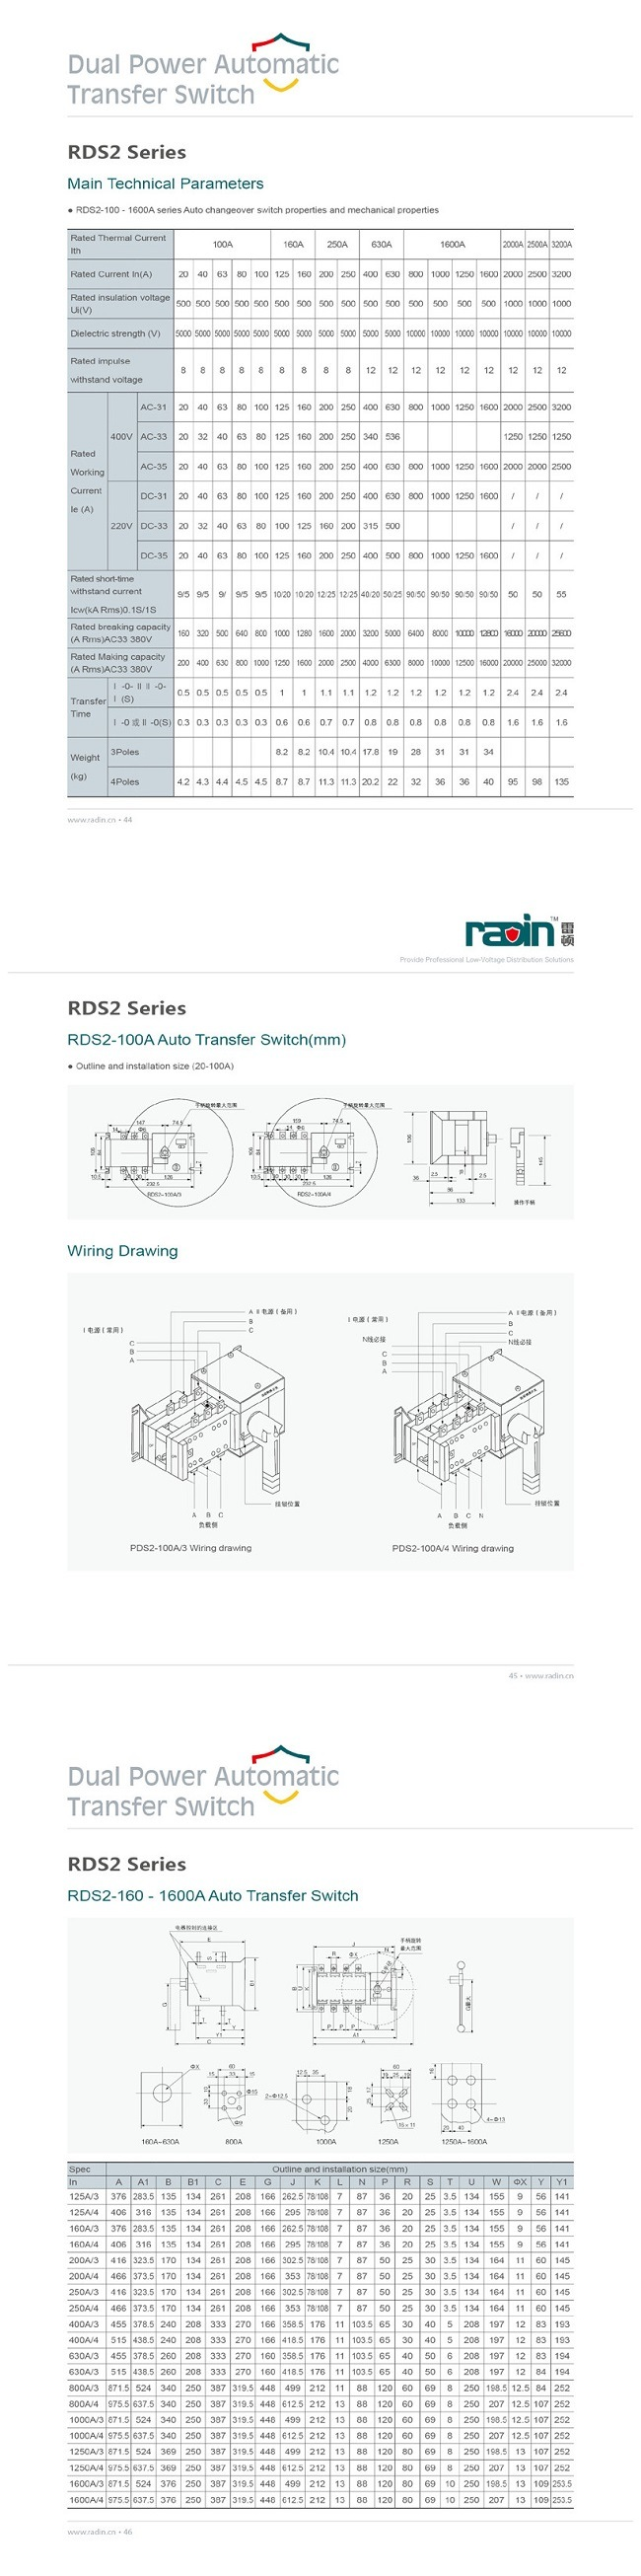 100 Amp Transfer Switch Wiring China 208v Auto Diagram 1 The Patented Designed Rds2 Series Now Is Upgraded Up To 1600a 2 Dc12v 24v Controlled Ats Available It Can Be Work With Dse Or Other Brand